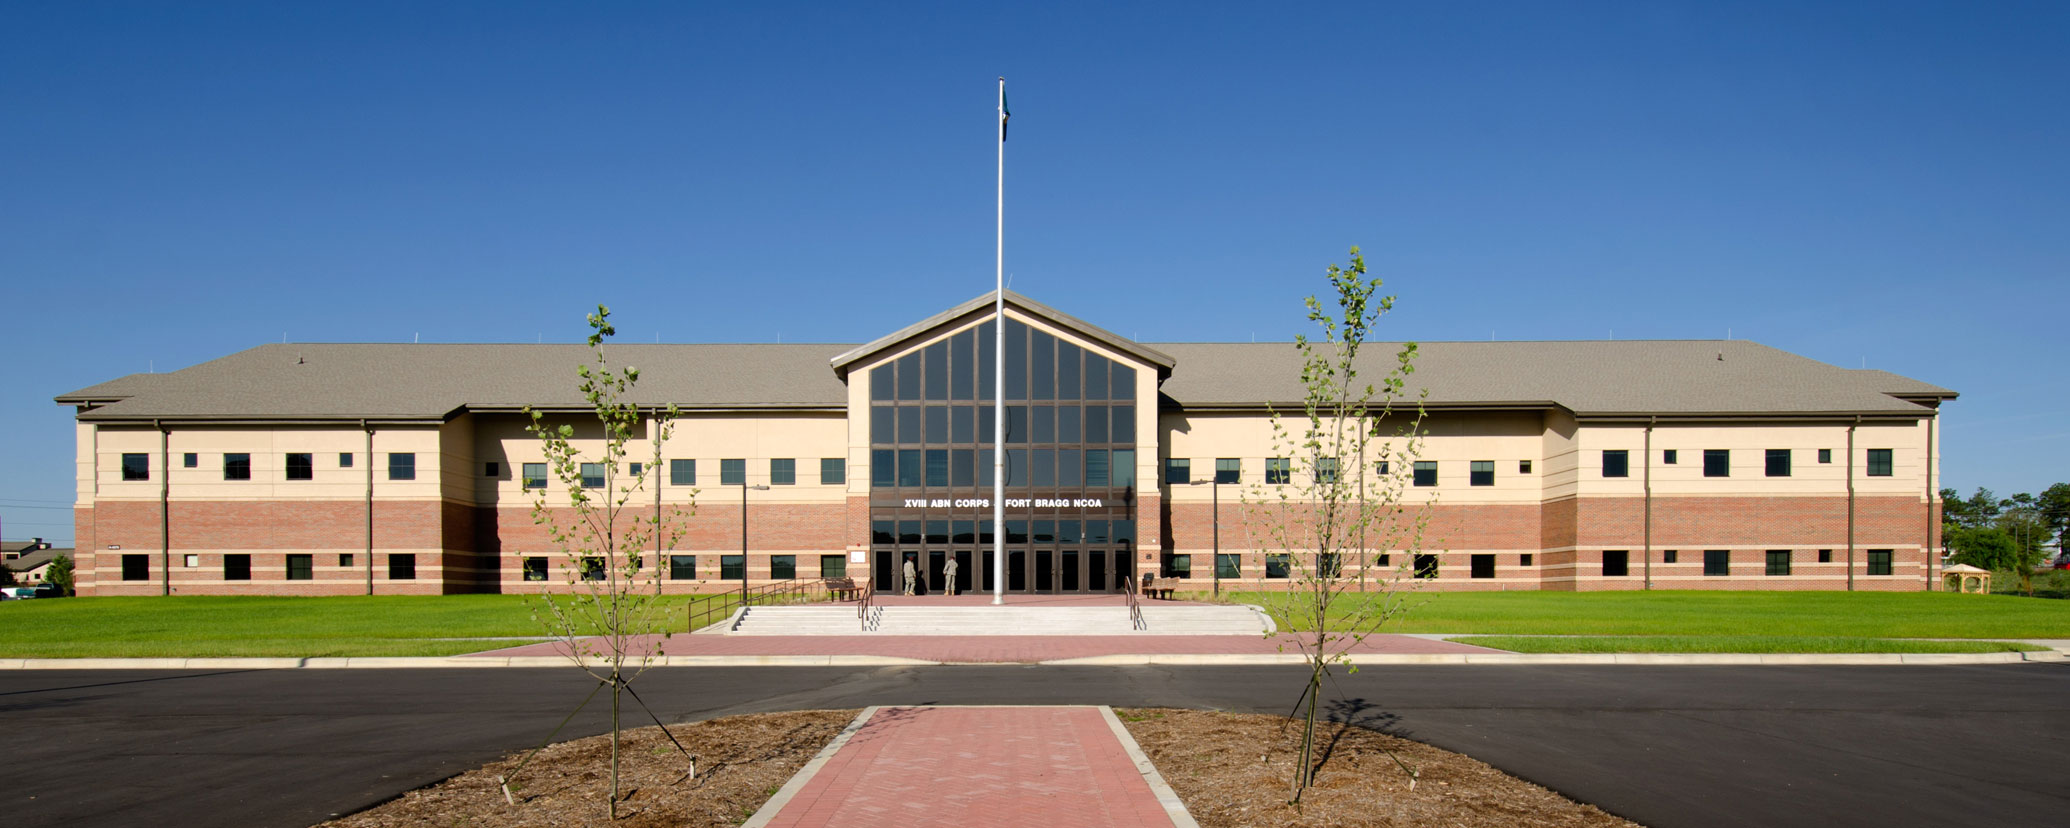 NCO Academy Complex Fort Bragg, NC   Caddell Construction